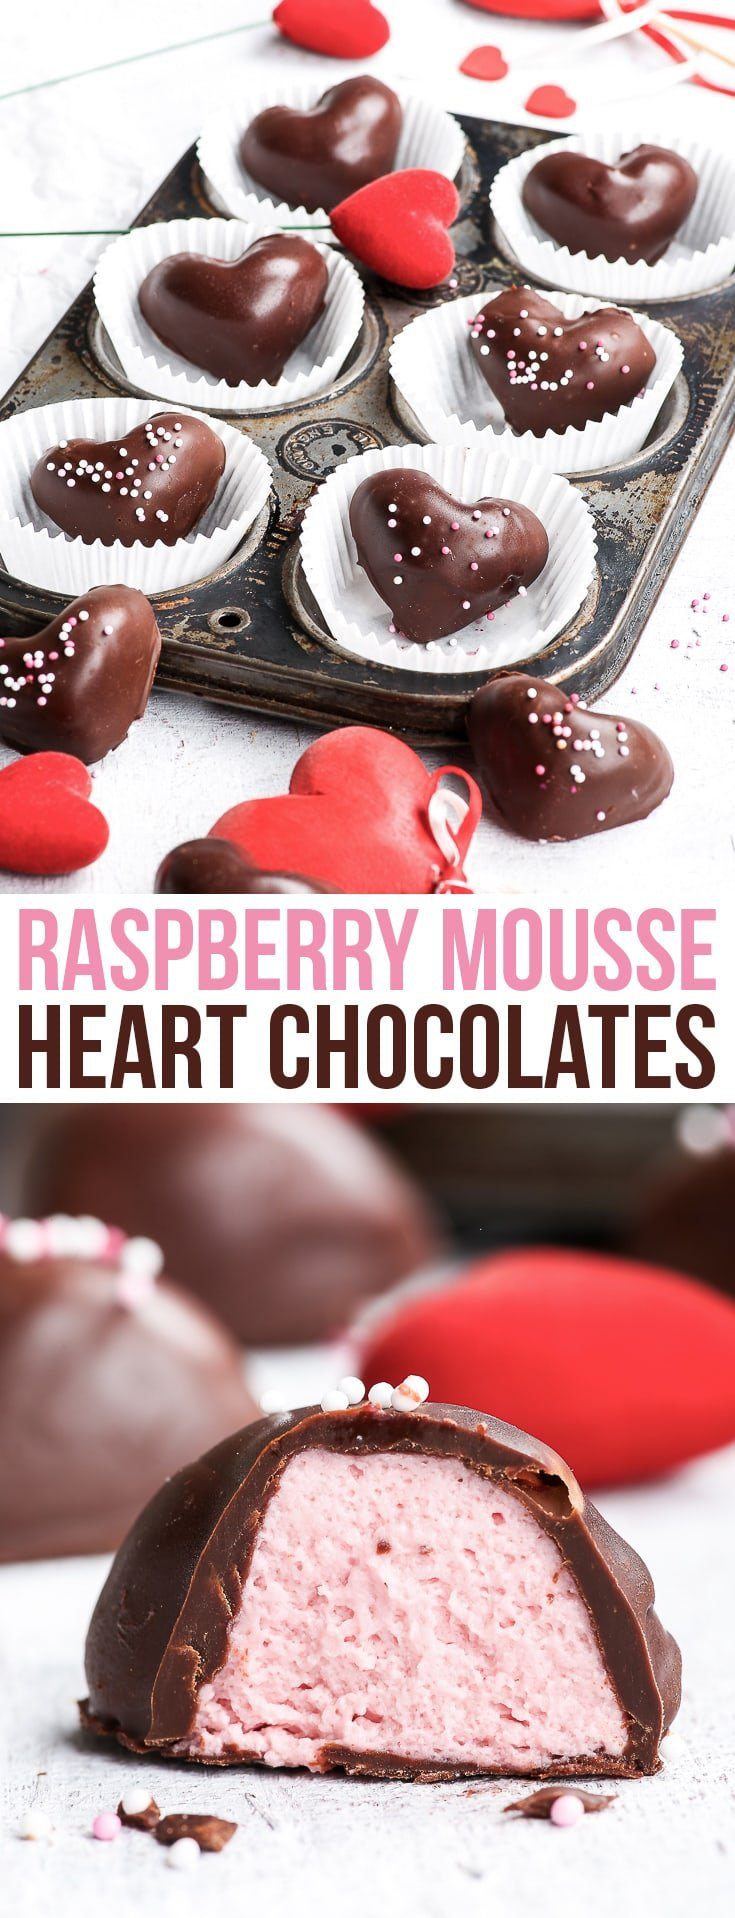 4-Ingredient Raspberry Mousse Heart Chocolates {gluten, nut & soy free, dairy free & vegan option} - 4 simple ingredients are all you need to make these incredibly delicious raspberry mousse heart chocolates. The perfect Valentine's day (or every-day just-because) dessert to share with your loved ones. Cute heart truffles - perfect romantic dessert. #chocolate #raspberry #recipe #valentinesday #valentines #truffles #dessert